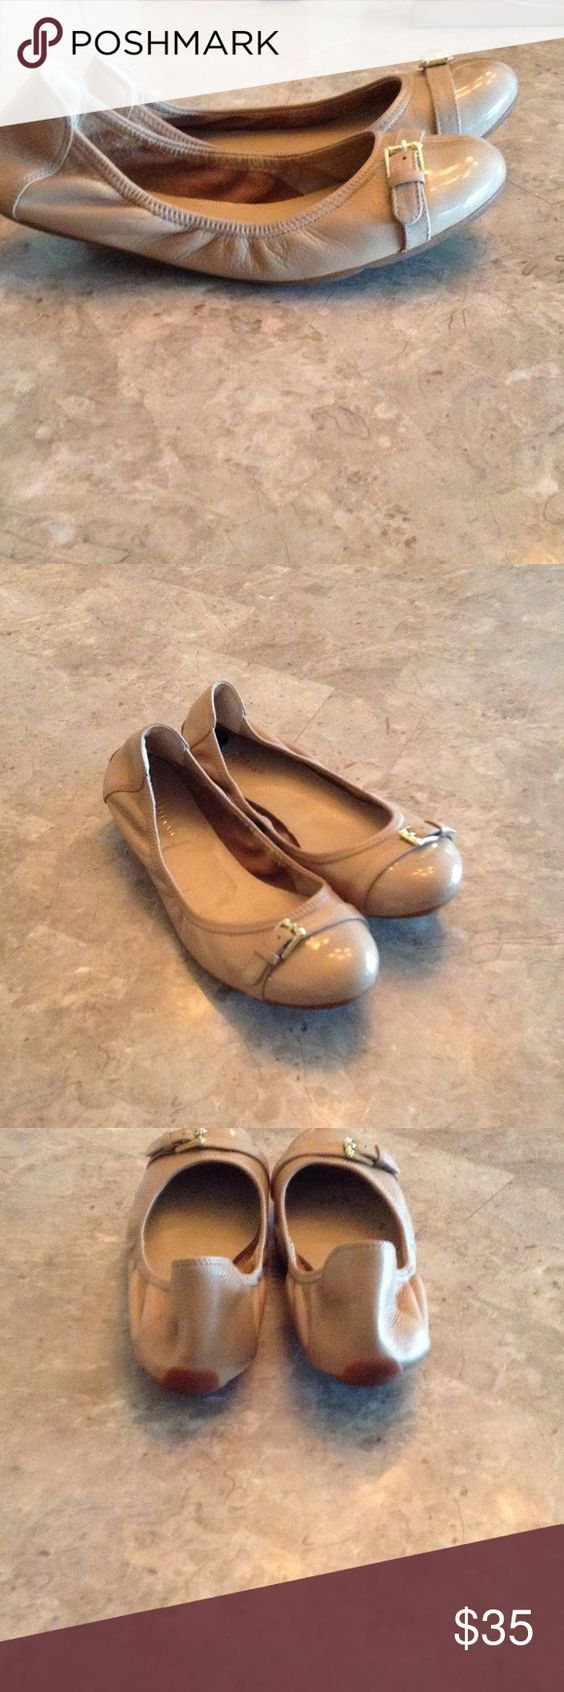 Cole Haan Shoes Used but in good condition Cole Haan Shoes Flats & Loafers